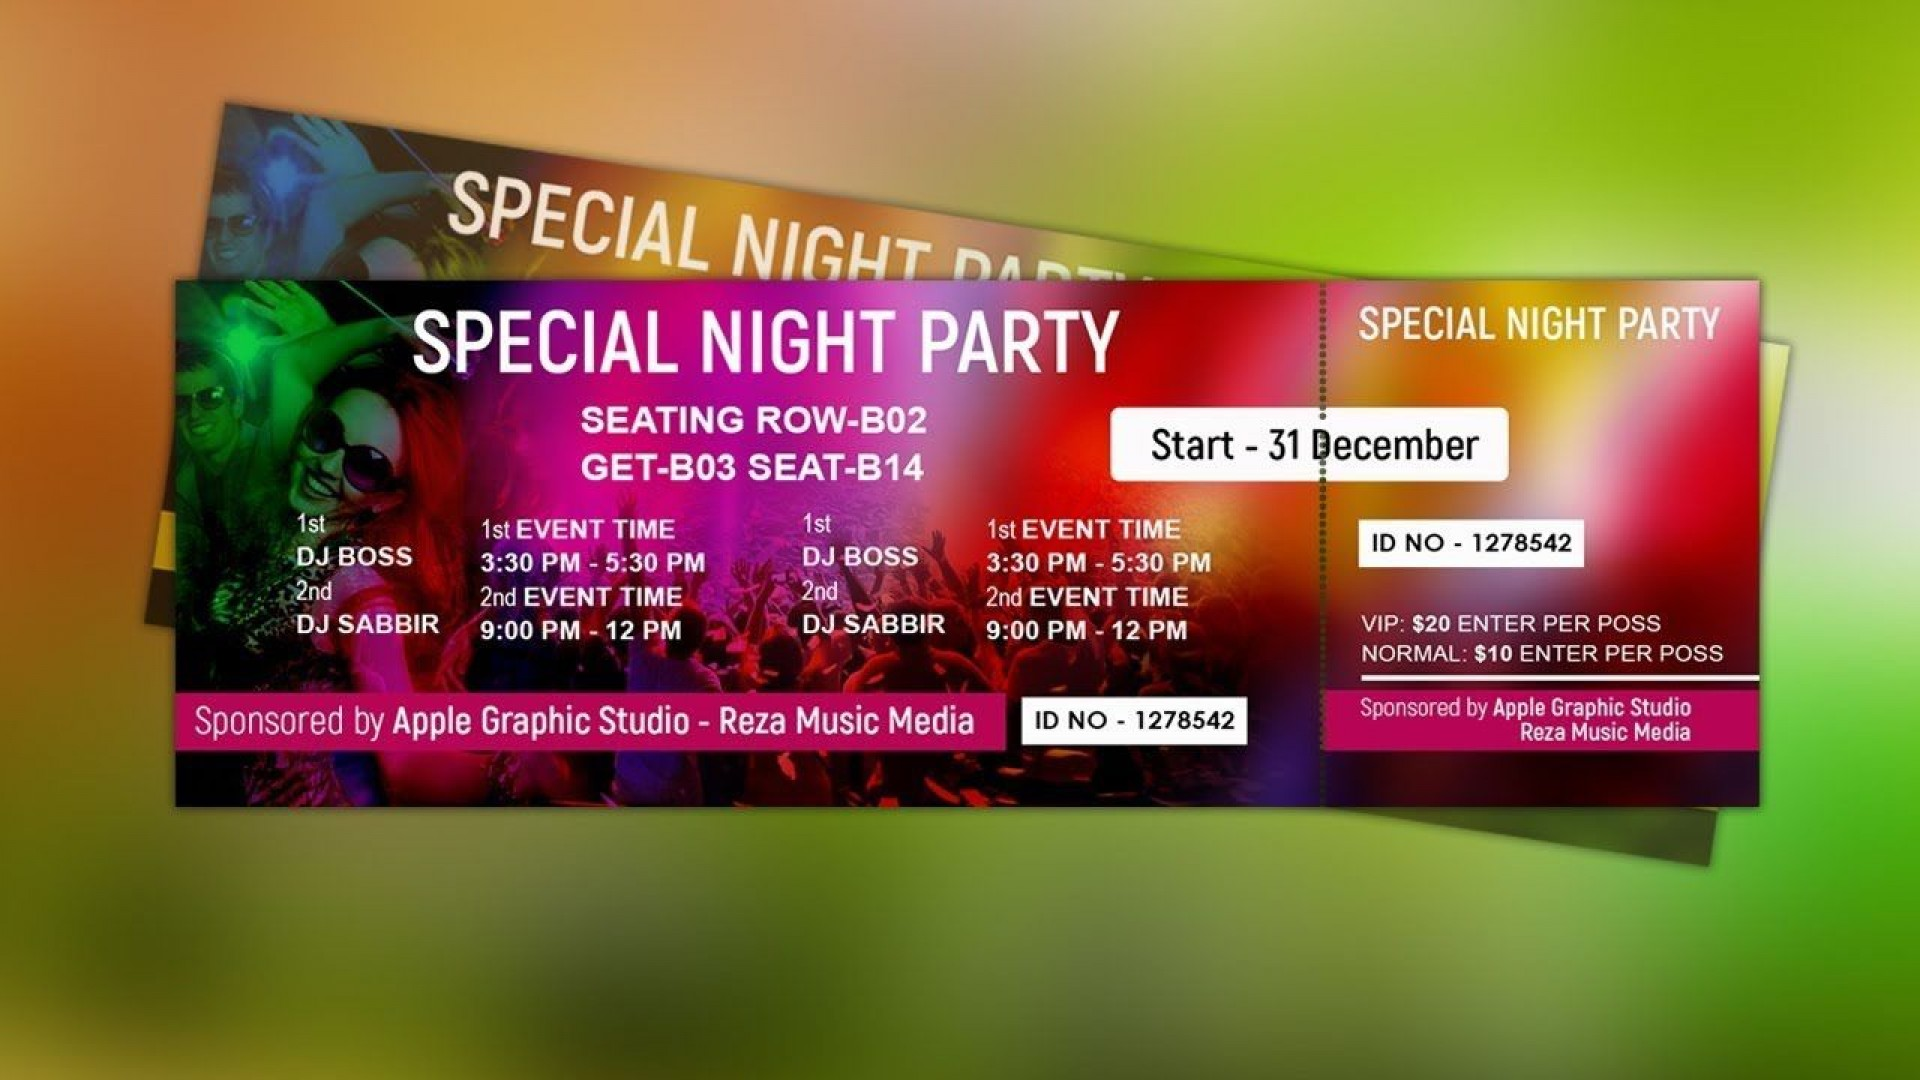 008 Awesome Event Ticket Template Photoshop Image  Design Psd Free Download1920